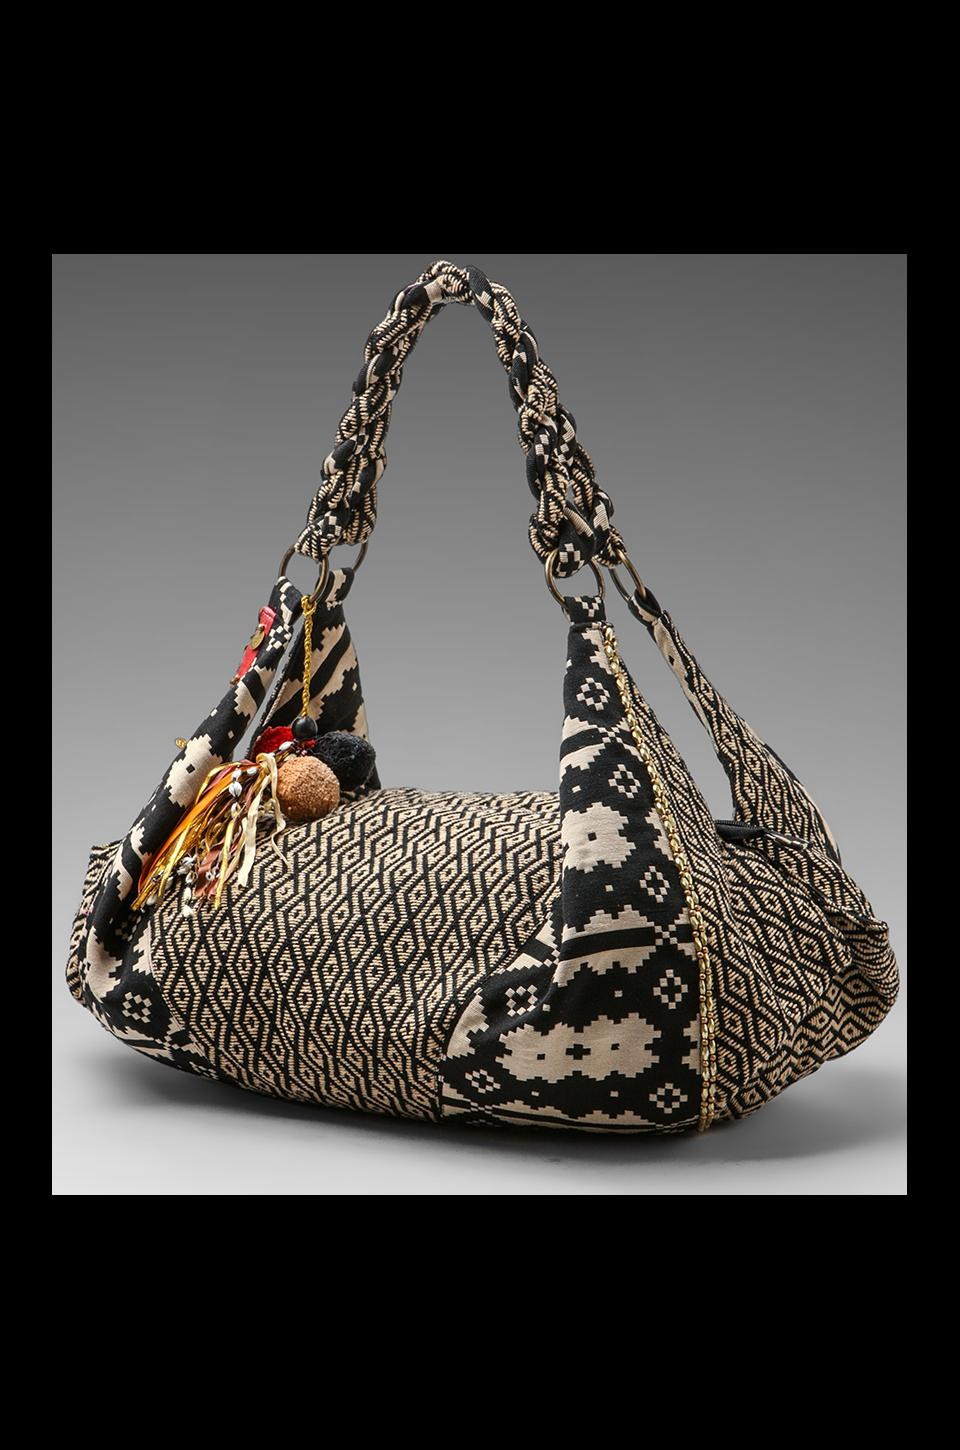 STELA 9 Shiva Hobo in Black/White